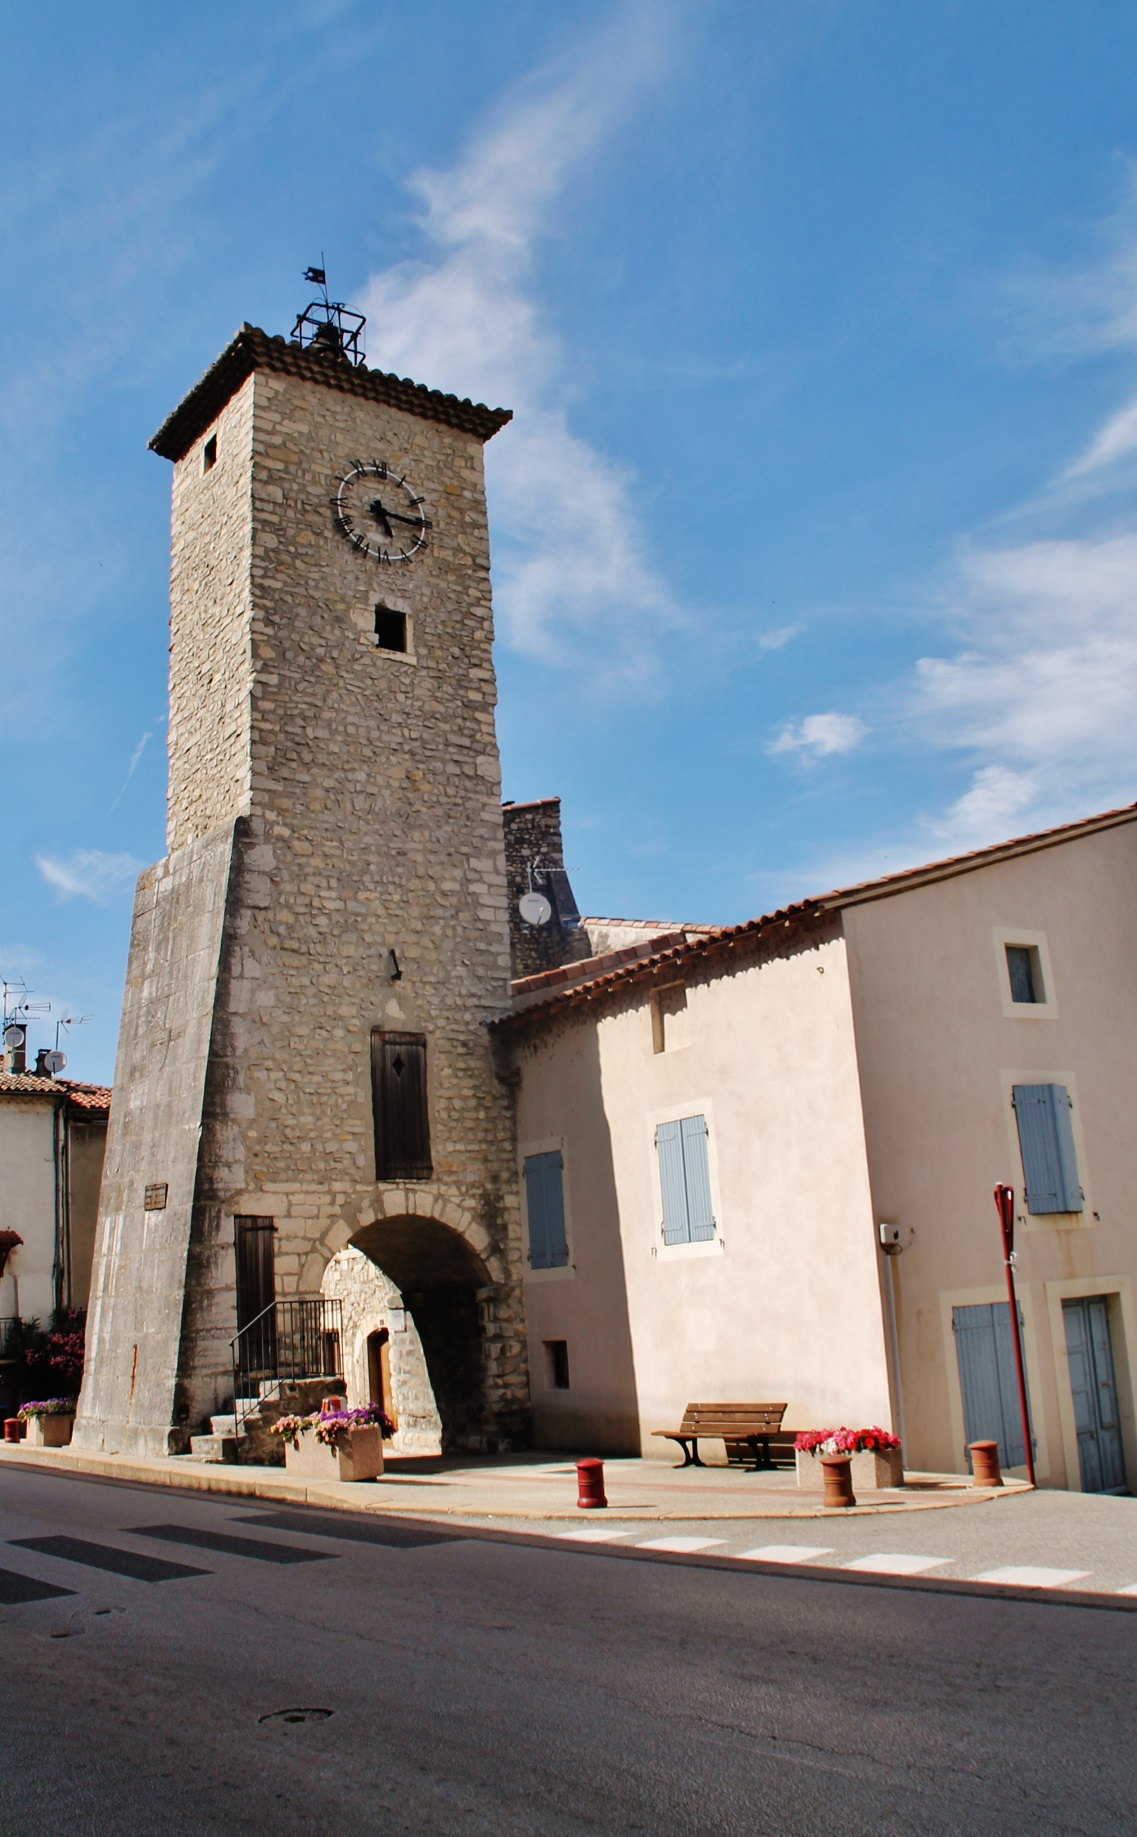 The clock tower, French Heritage monument to Baix.